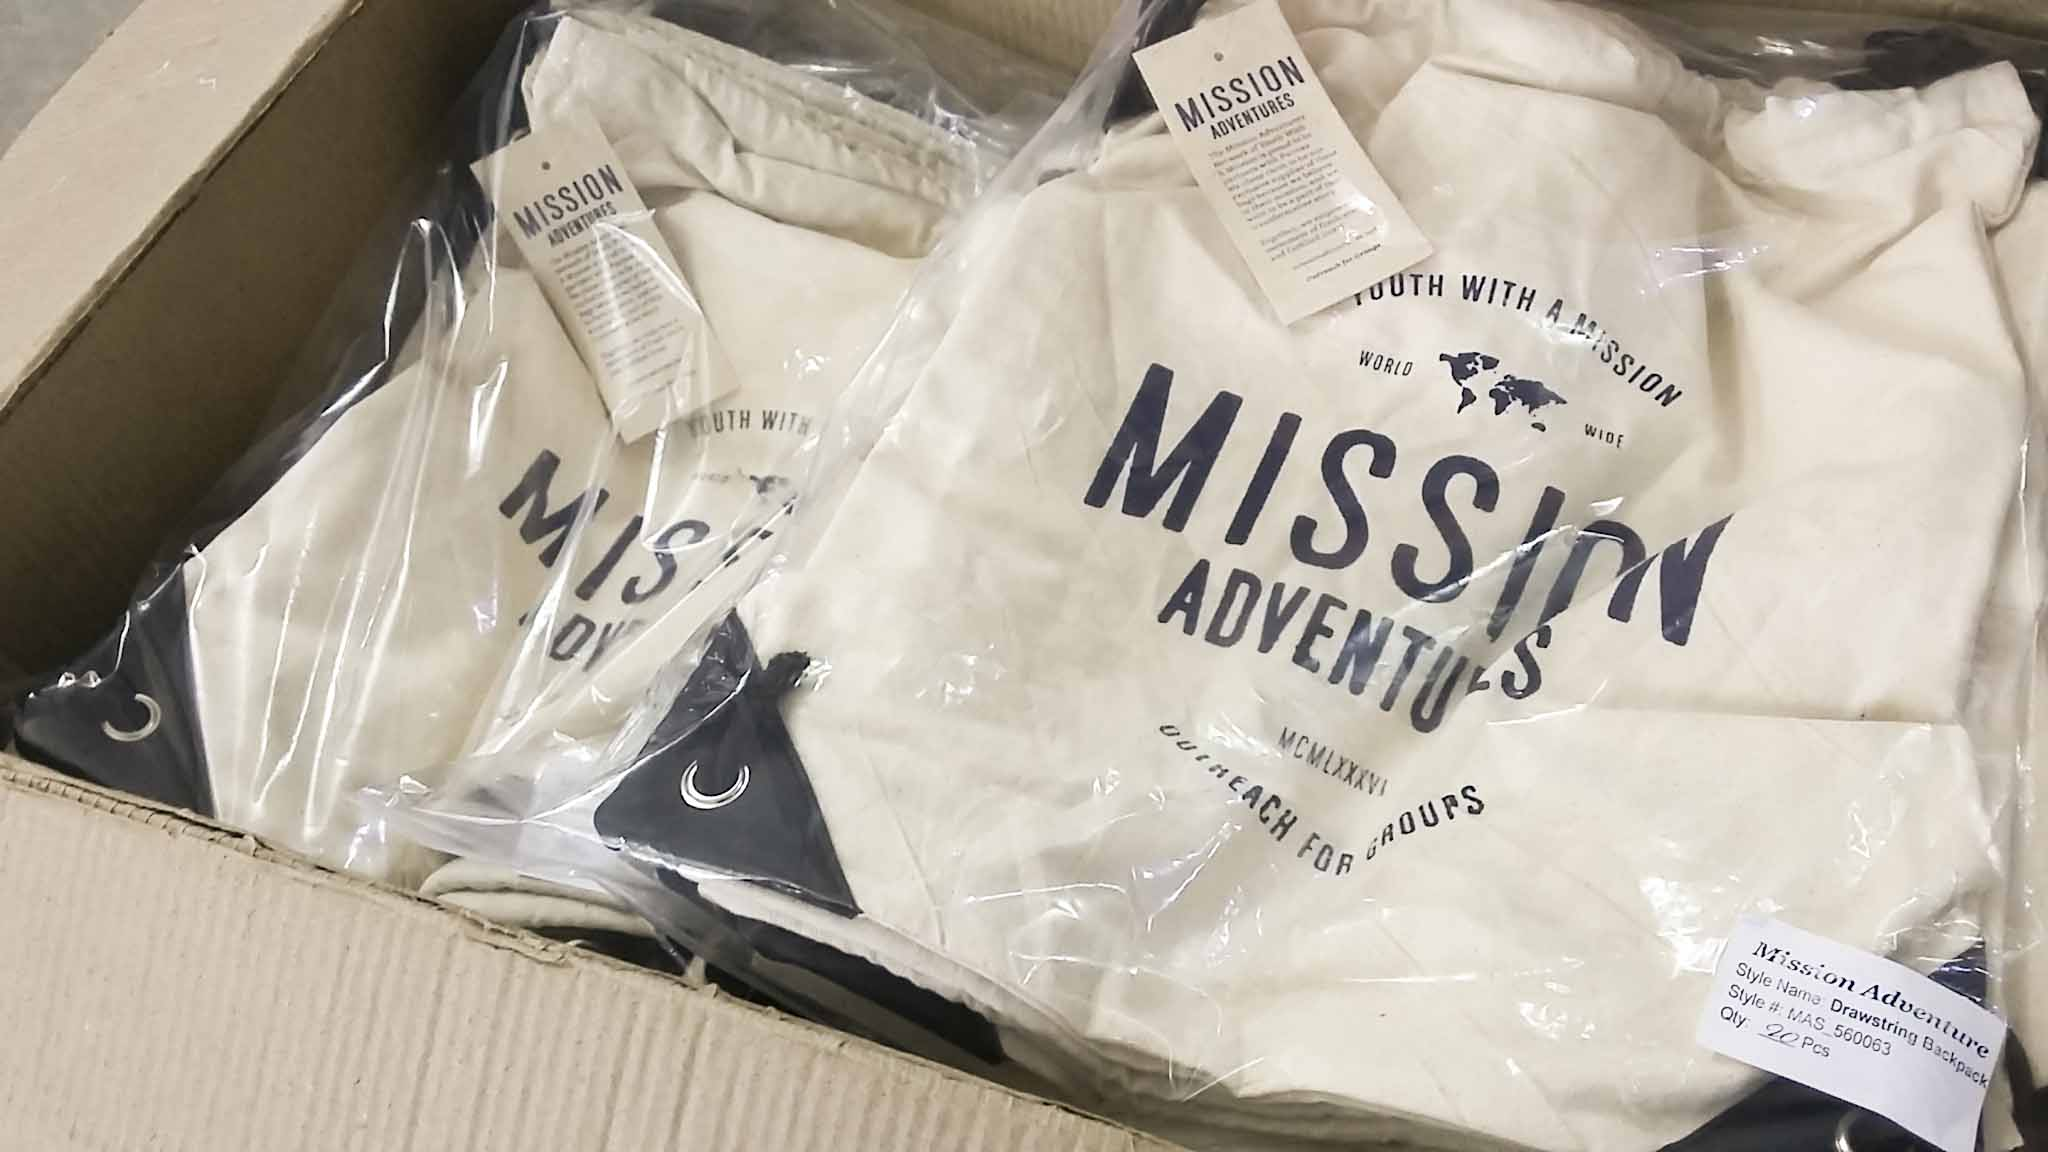 mission adventures bag in production 6.jpg